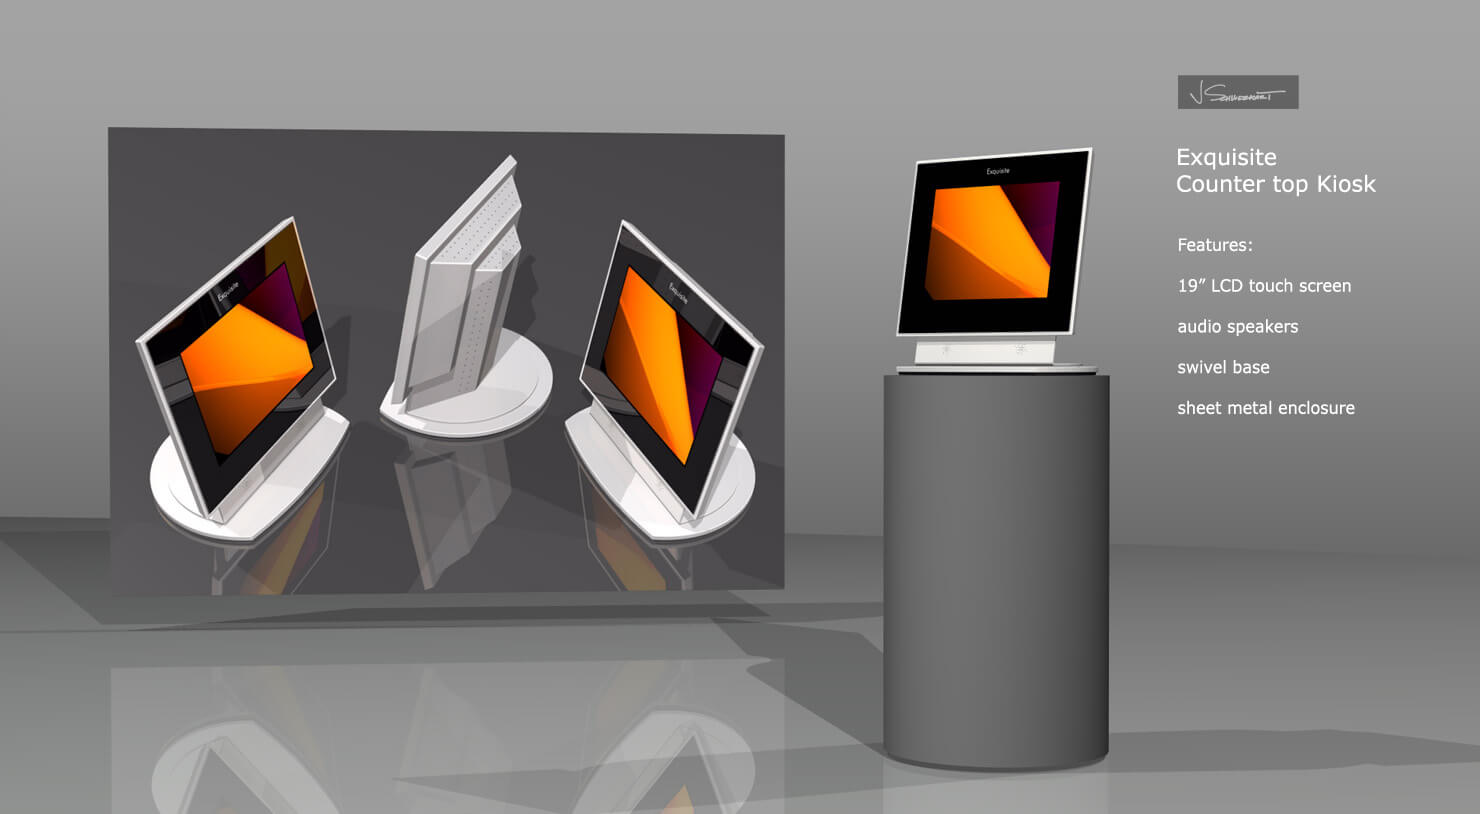 Exquisite Countertop Kiosk Designed by Industrial Designer Jer Schweickart